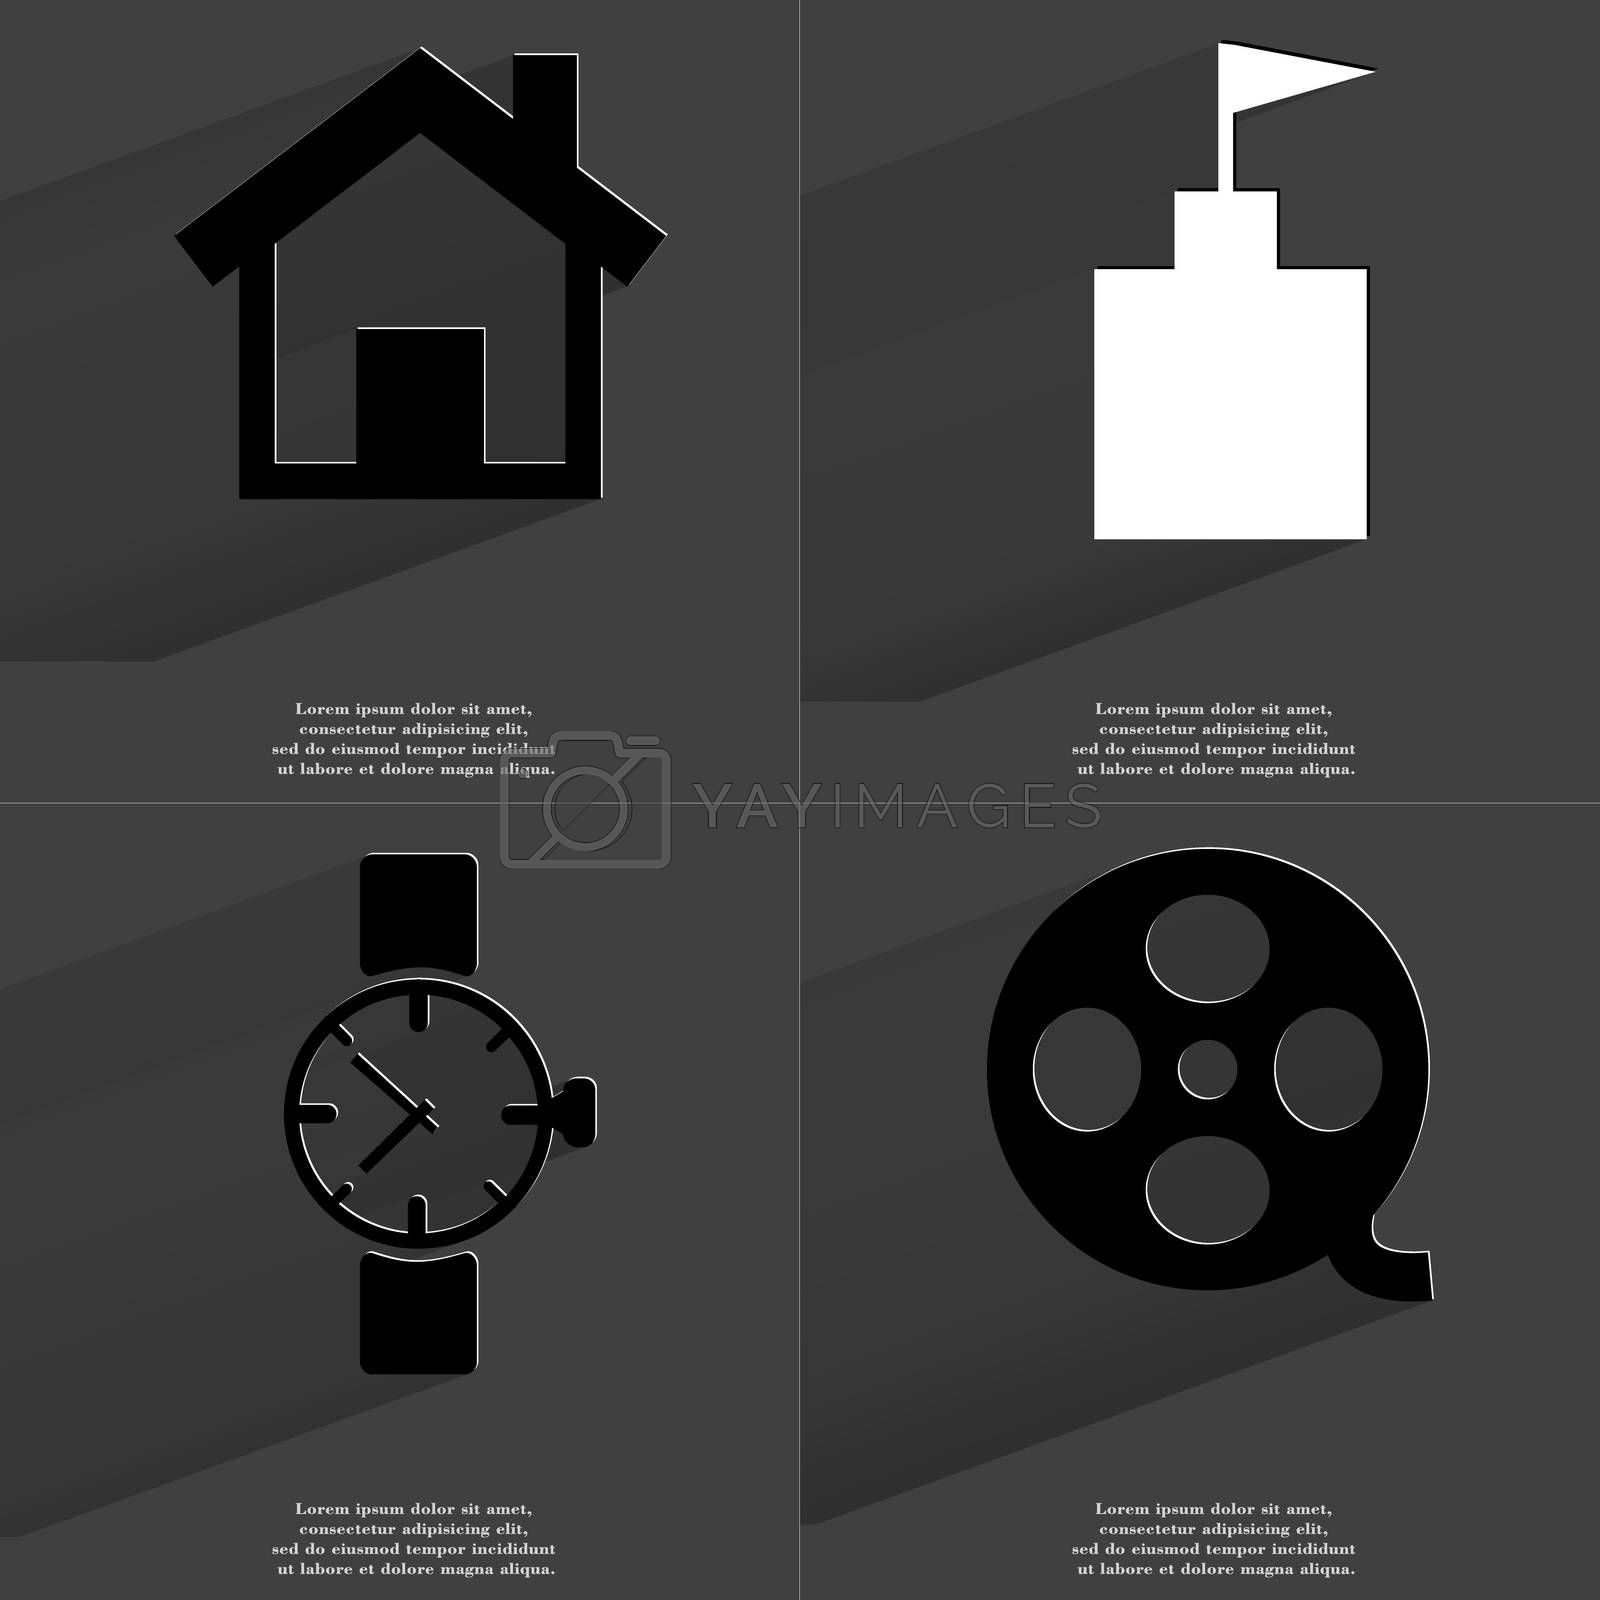 Royalty free image of House, Flag tower, Wrist watch, Videotape. Symbols with long shadow. Flat design by serhii_lohvyniuk